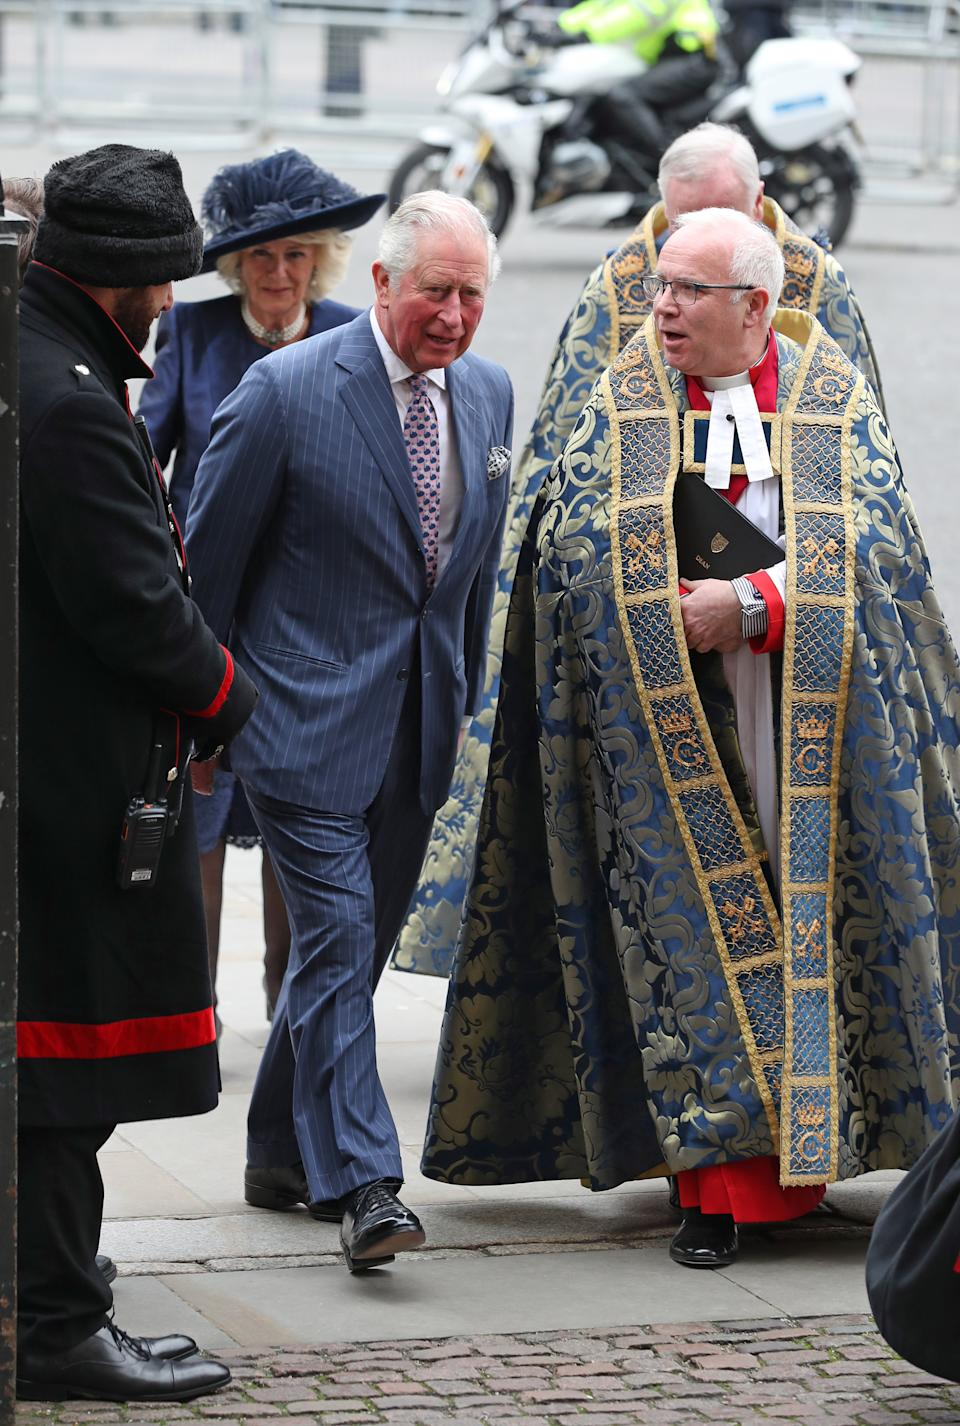 The Prince of Wales and the Duchess of Cornwall arrive at the Commonwealth Service at Westminster Abbey, London on Commonwealth Day. The service is the Duke and Duchess of Sussex's final official engagement before they quit royal life. (Photo by Yui Mok/PA Images via Getty Images)